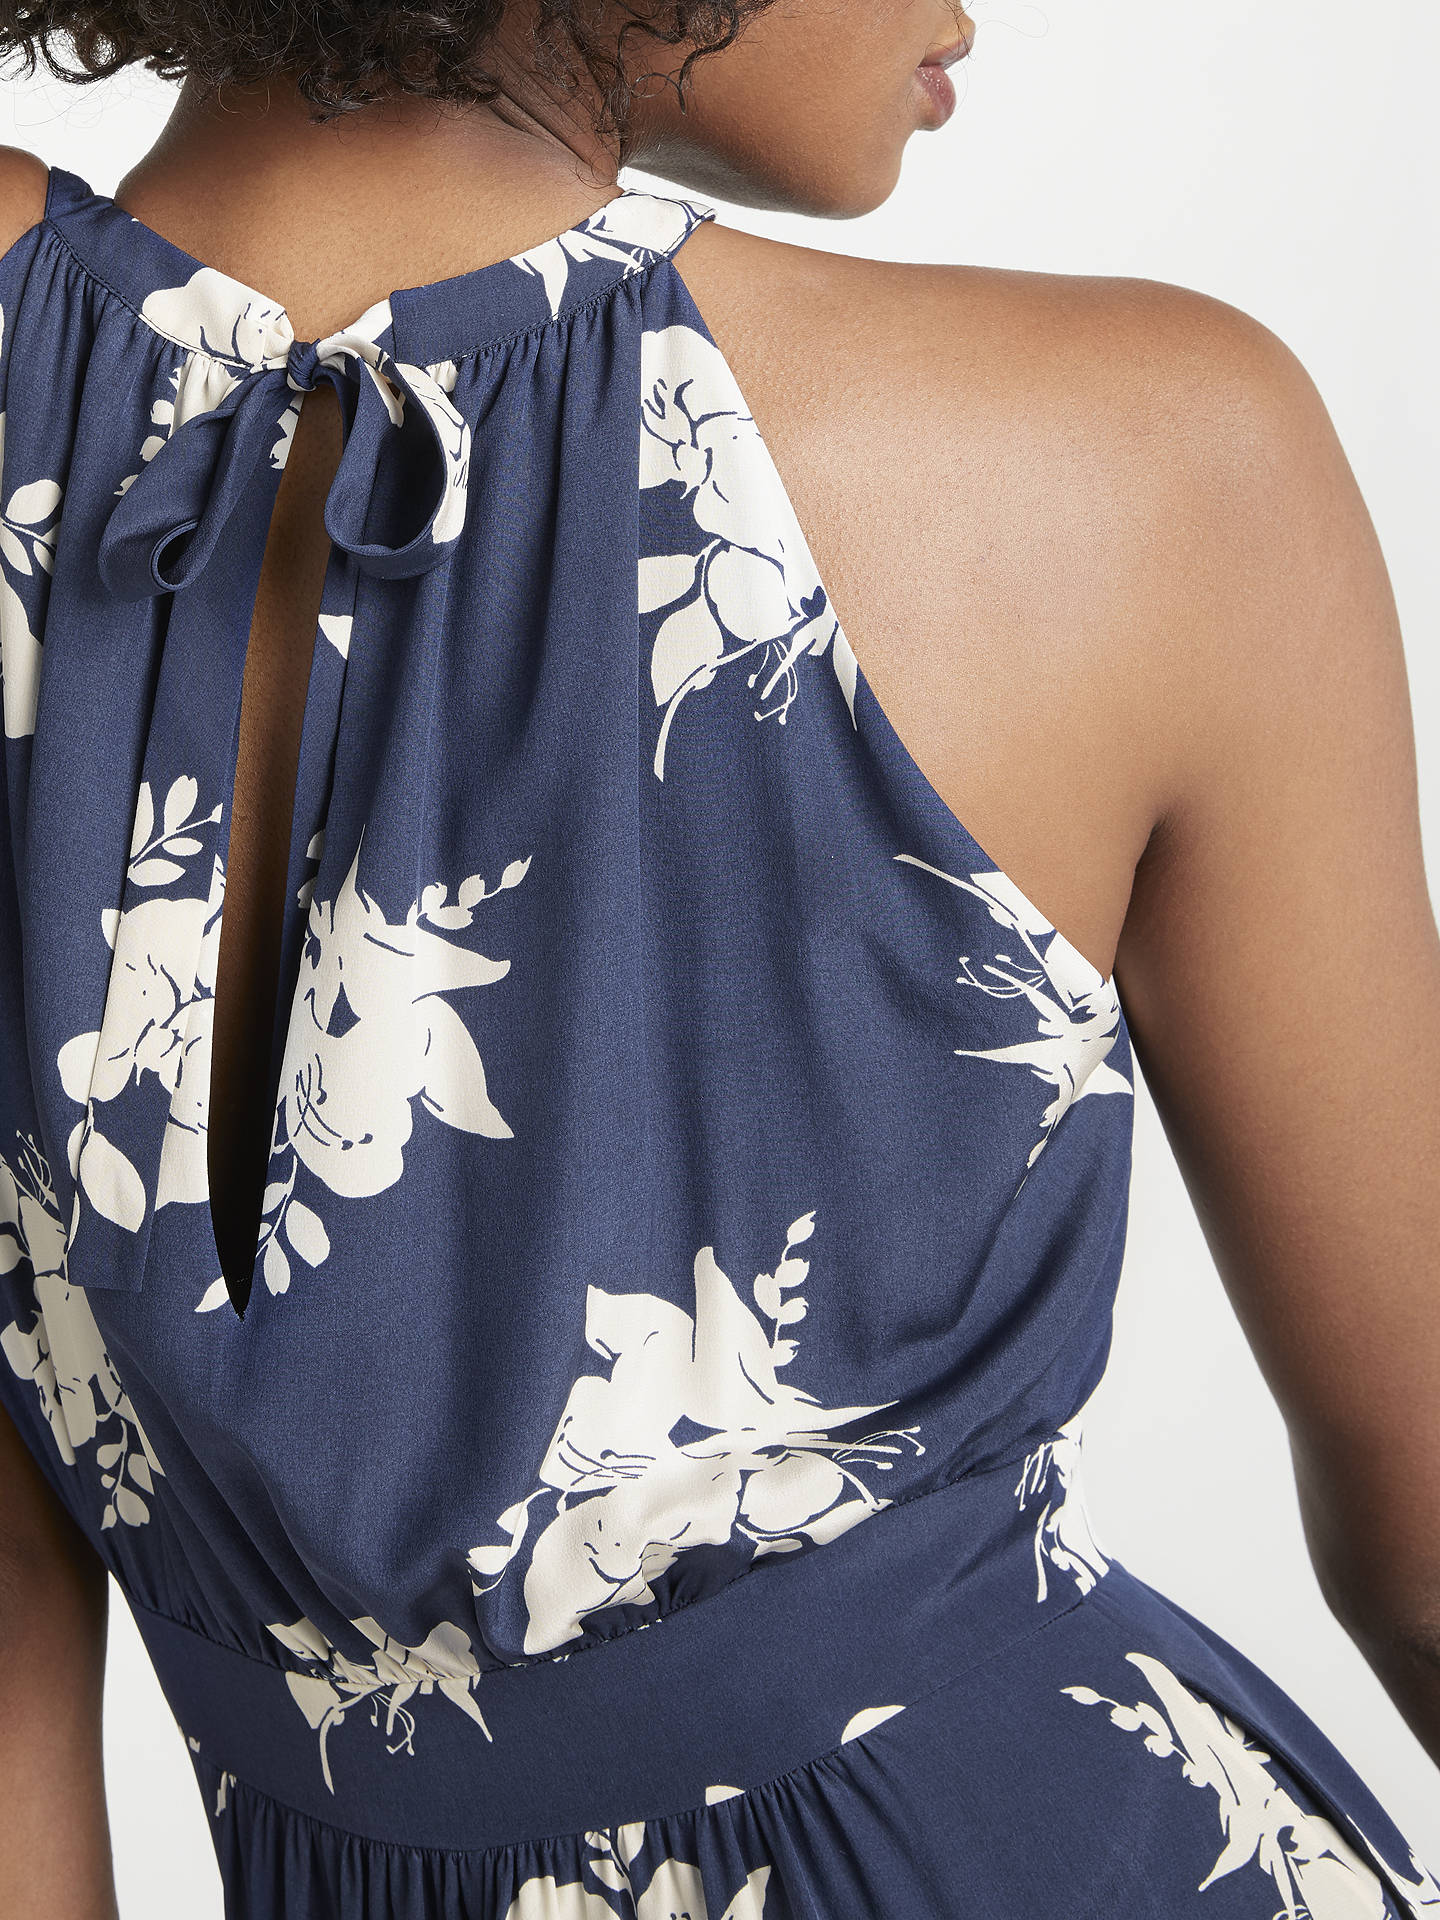 BuyBoden Agnes Halterneck Floral Print Midi Dress, Navy/Ivory, 10 Online at johnlewis.com